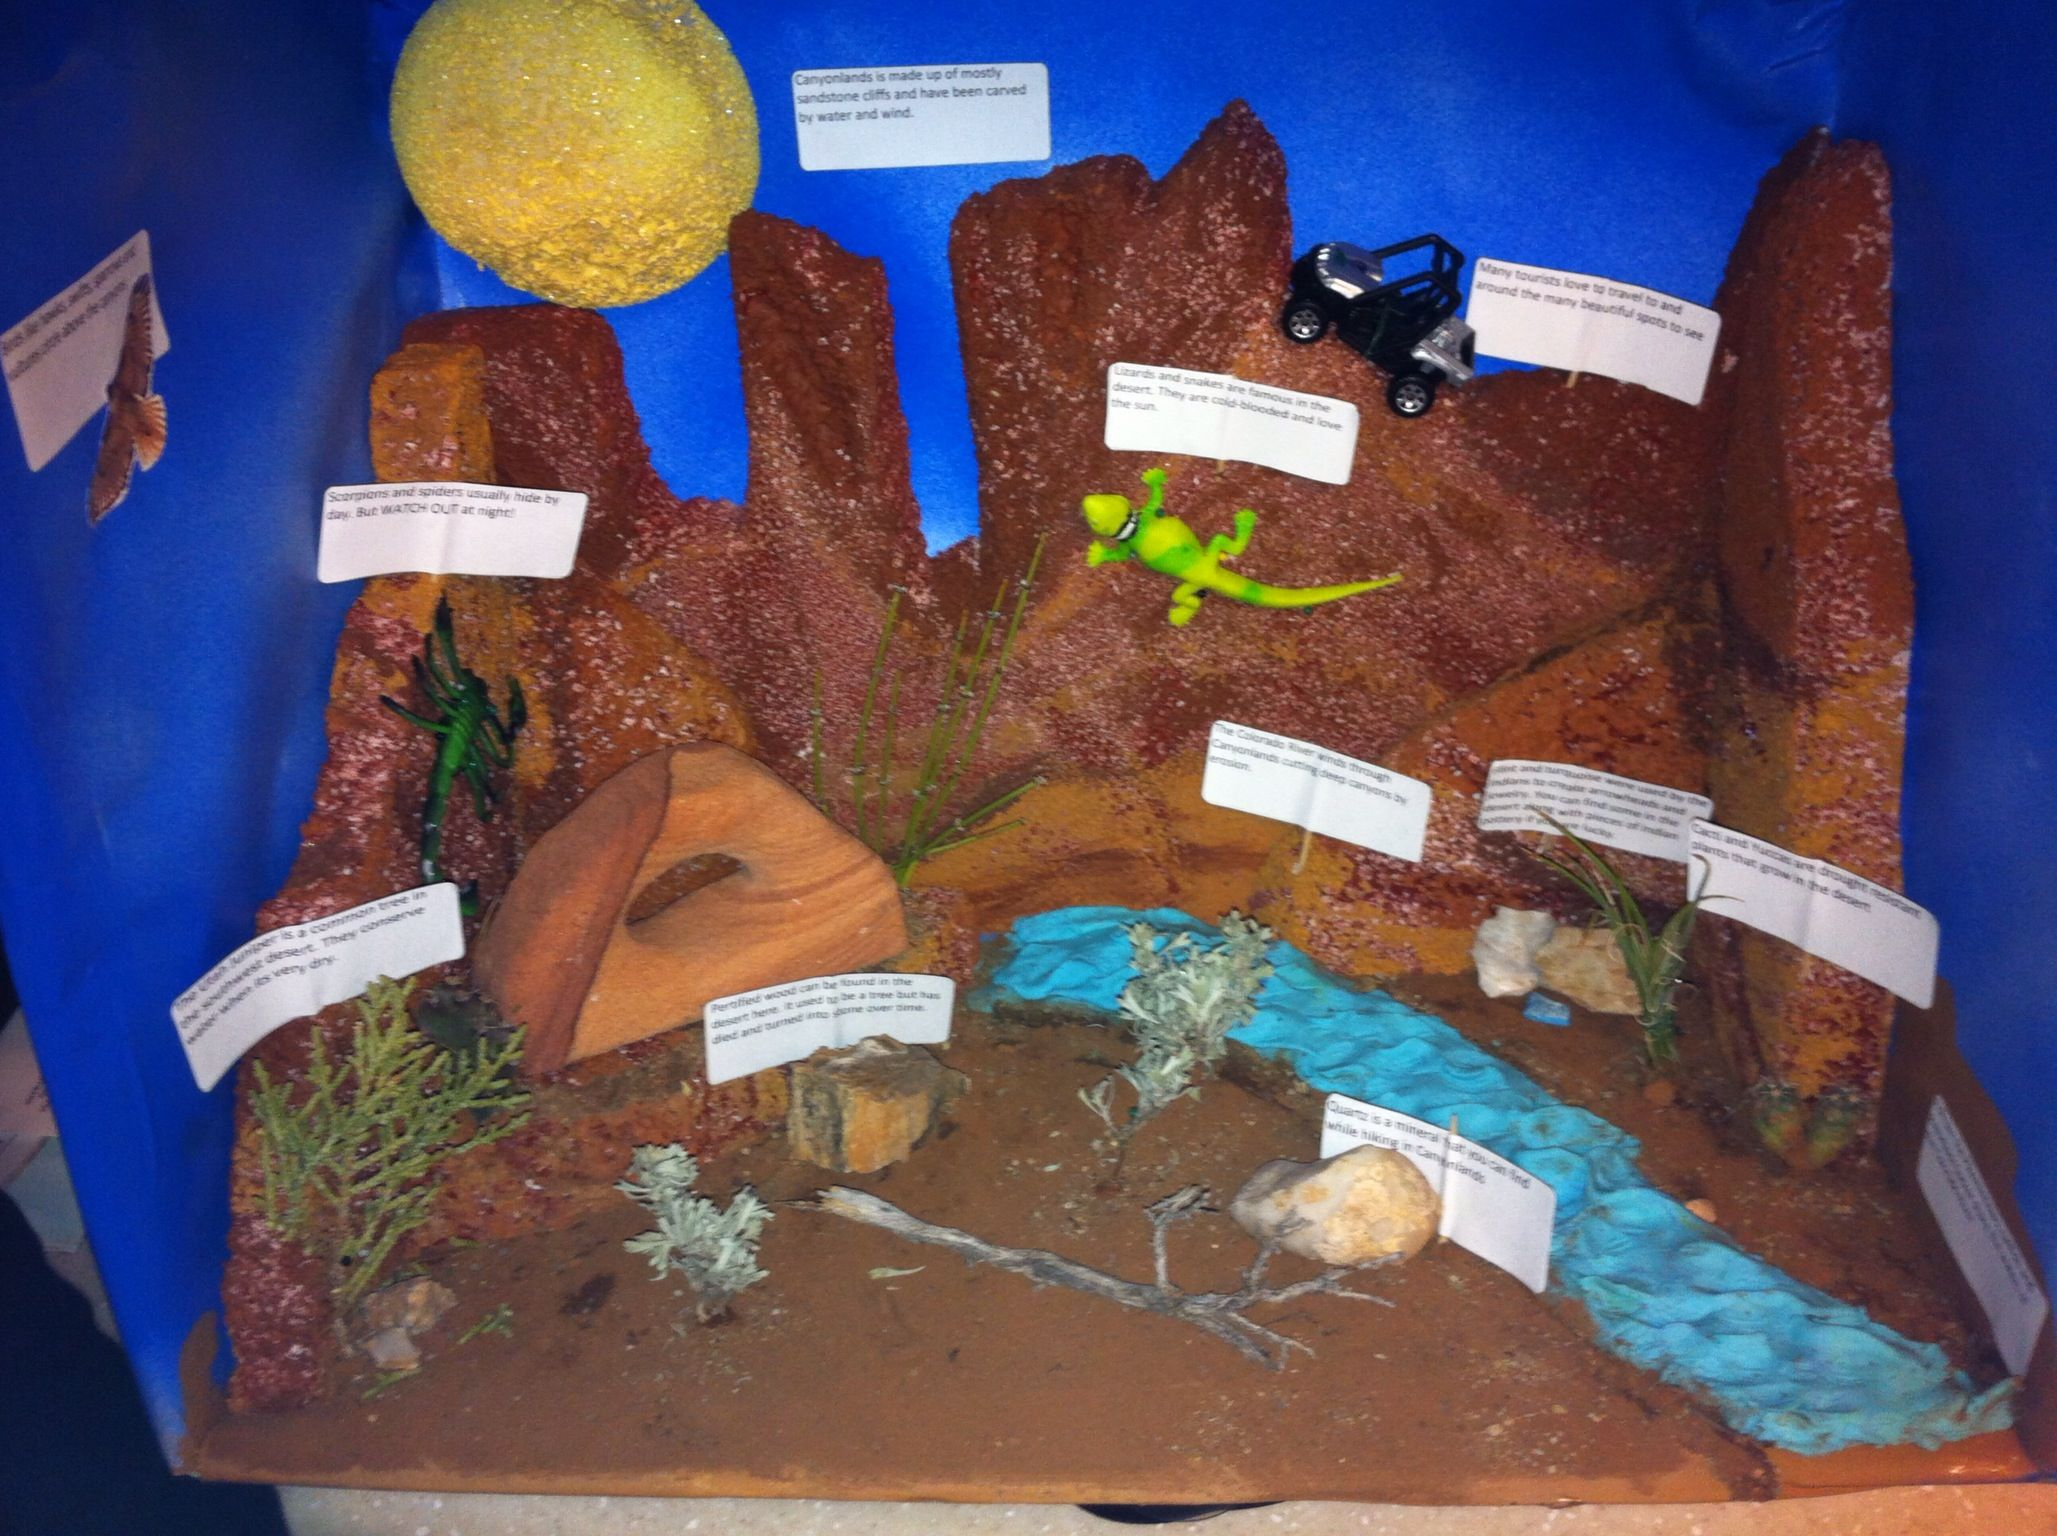 Canyonlands desert diorama school project | Zoology/Land ...